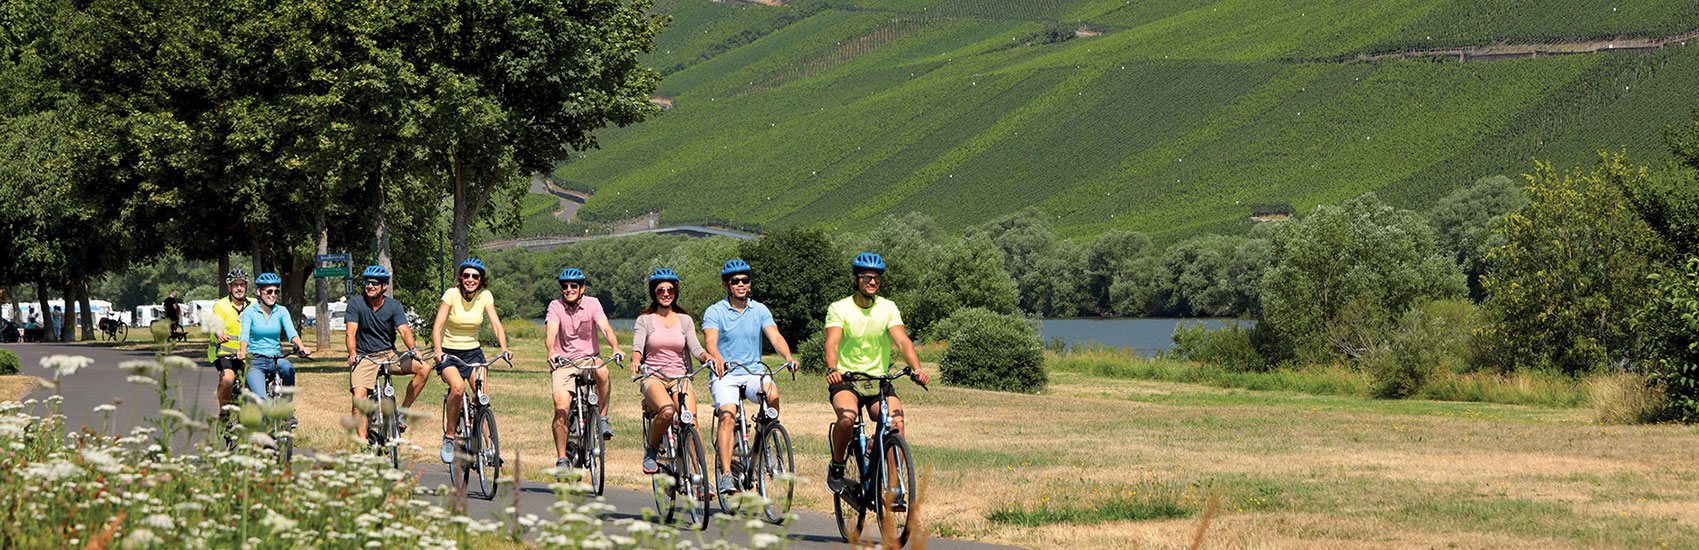 Bike and Hike Along Europe's Rivers 4